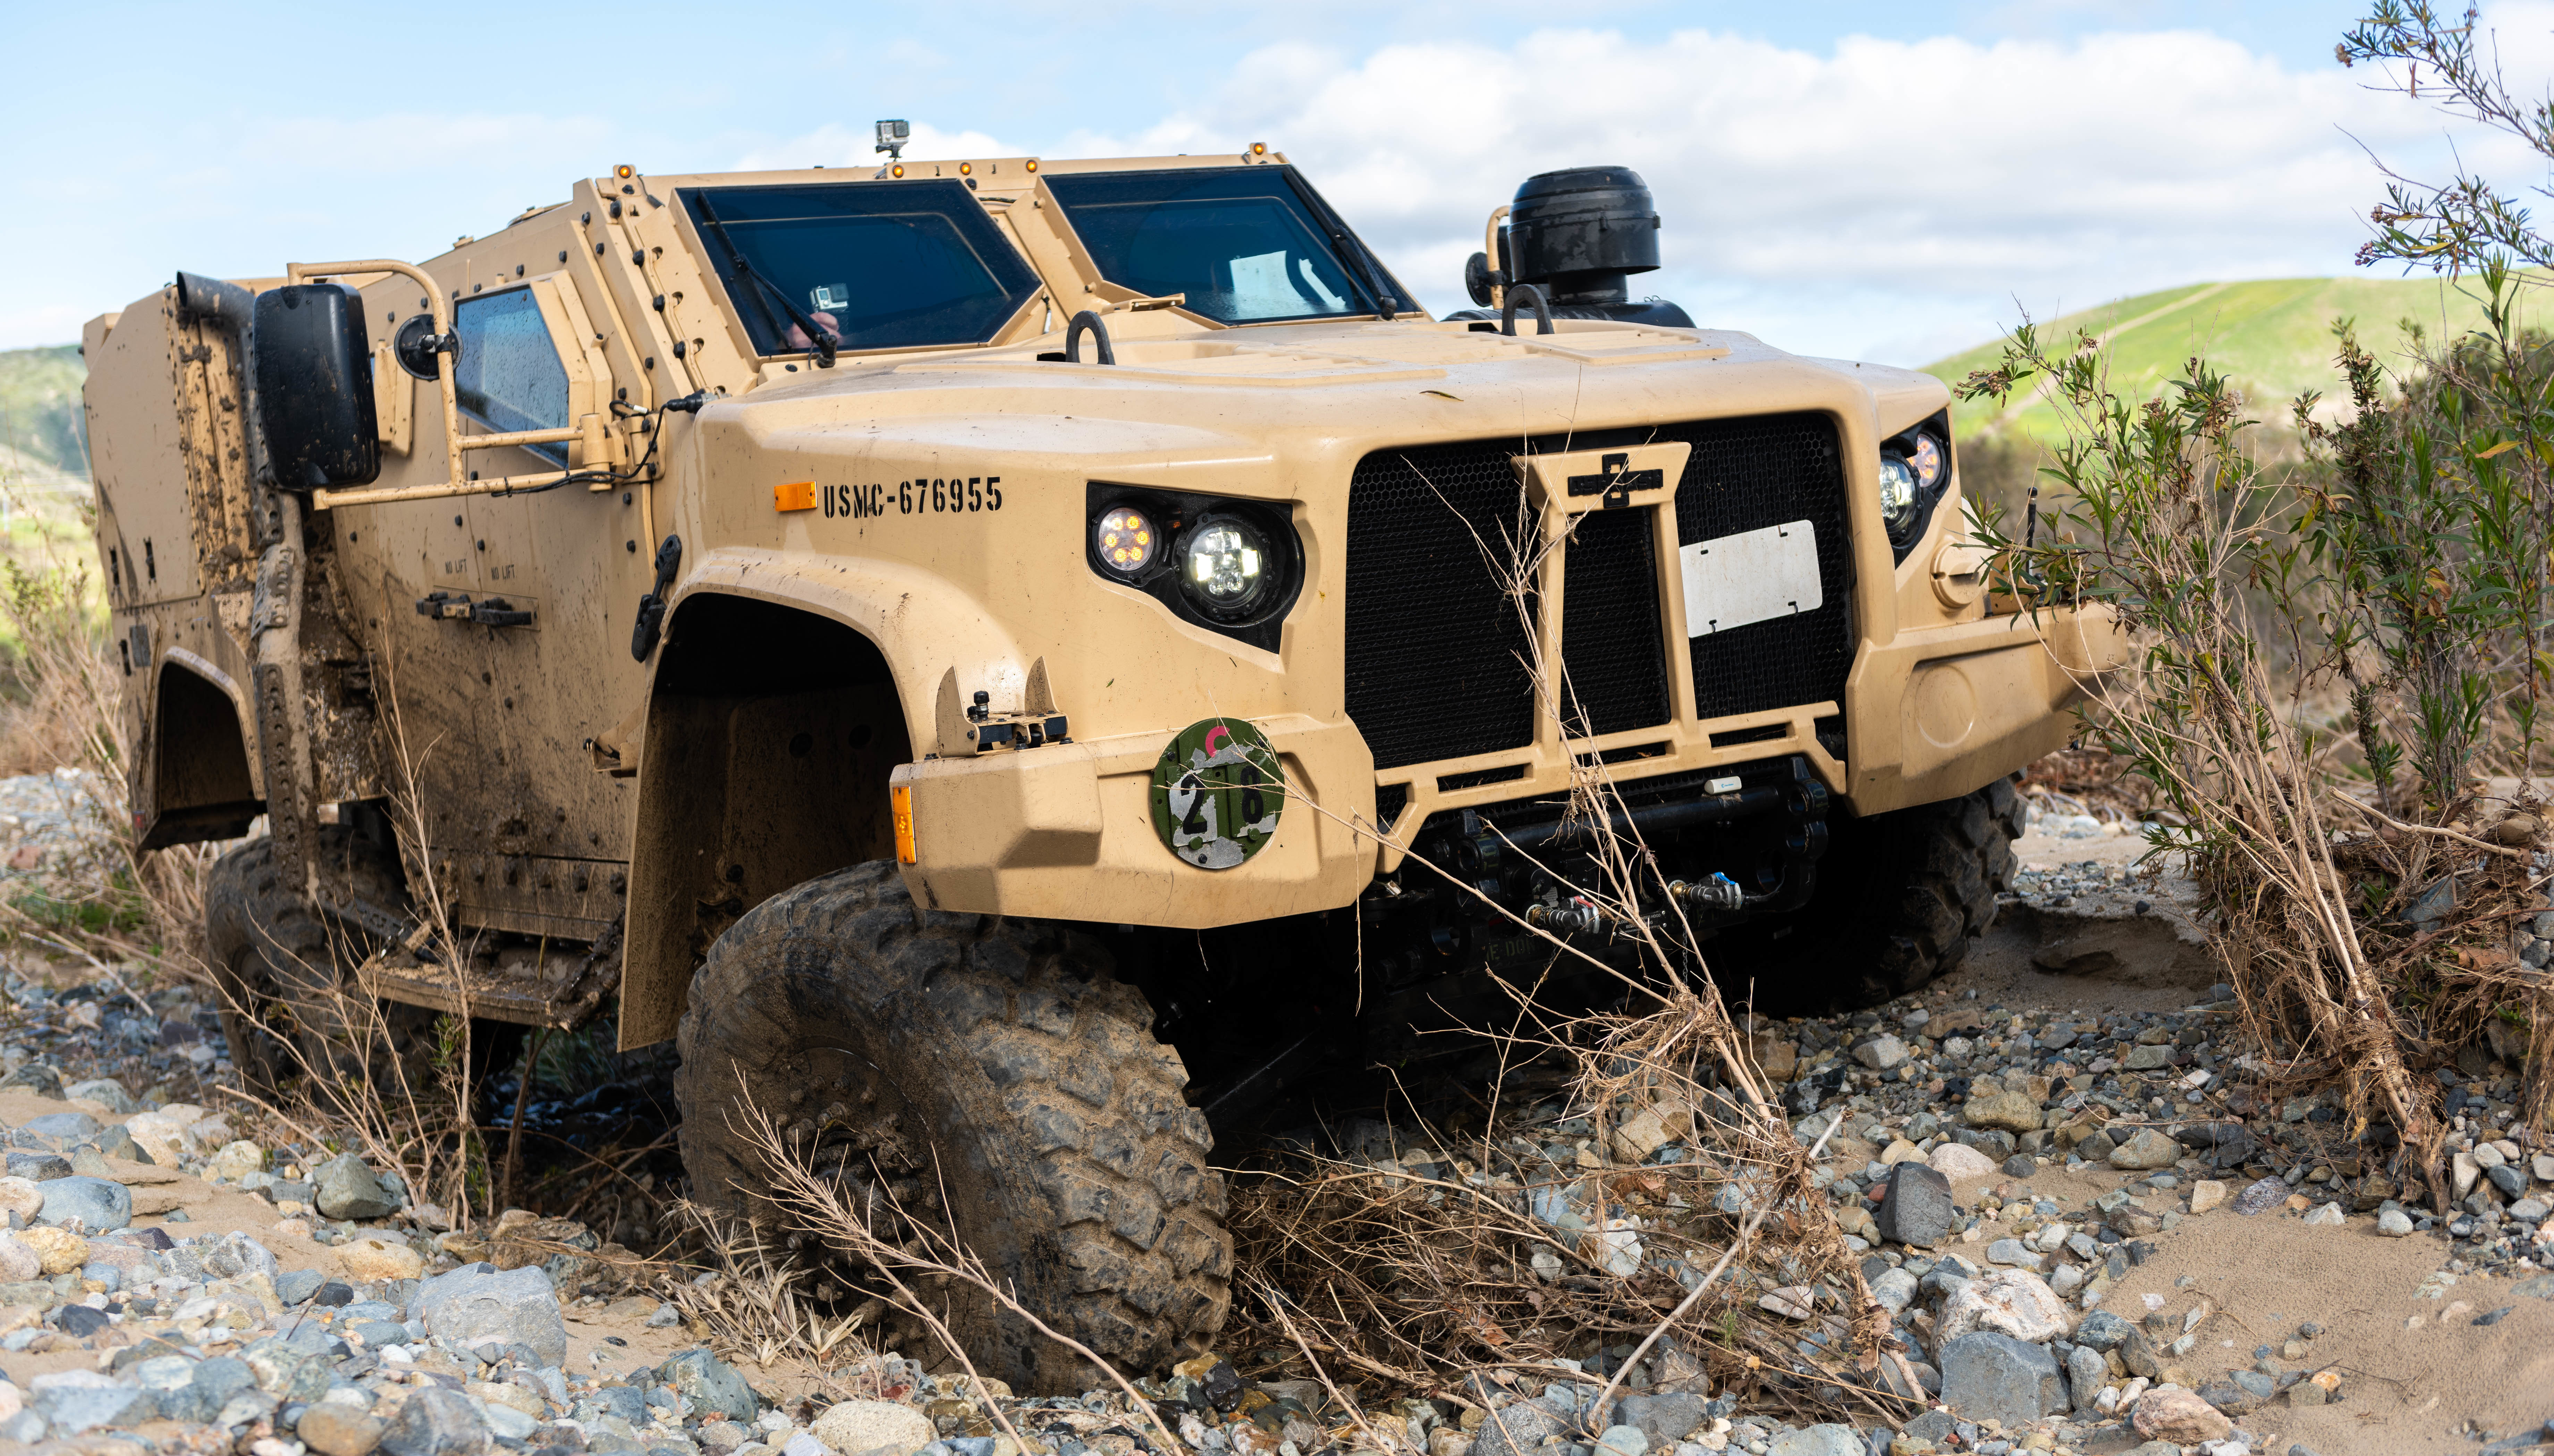 A Joint Light Tactical Vehicle displays its ability to handle multiple terrain types by physically adjusting its suspension during a demonstration at the School of Infantry West, Marine Corps Base Camp Pendleton, California. (Sgt. Timothy R. Smithers/Marine Corps)